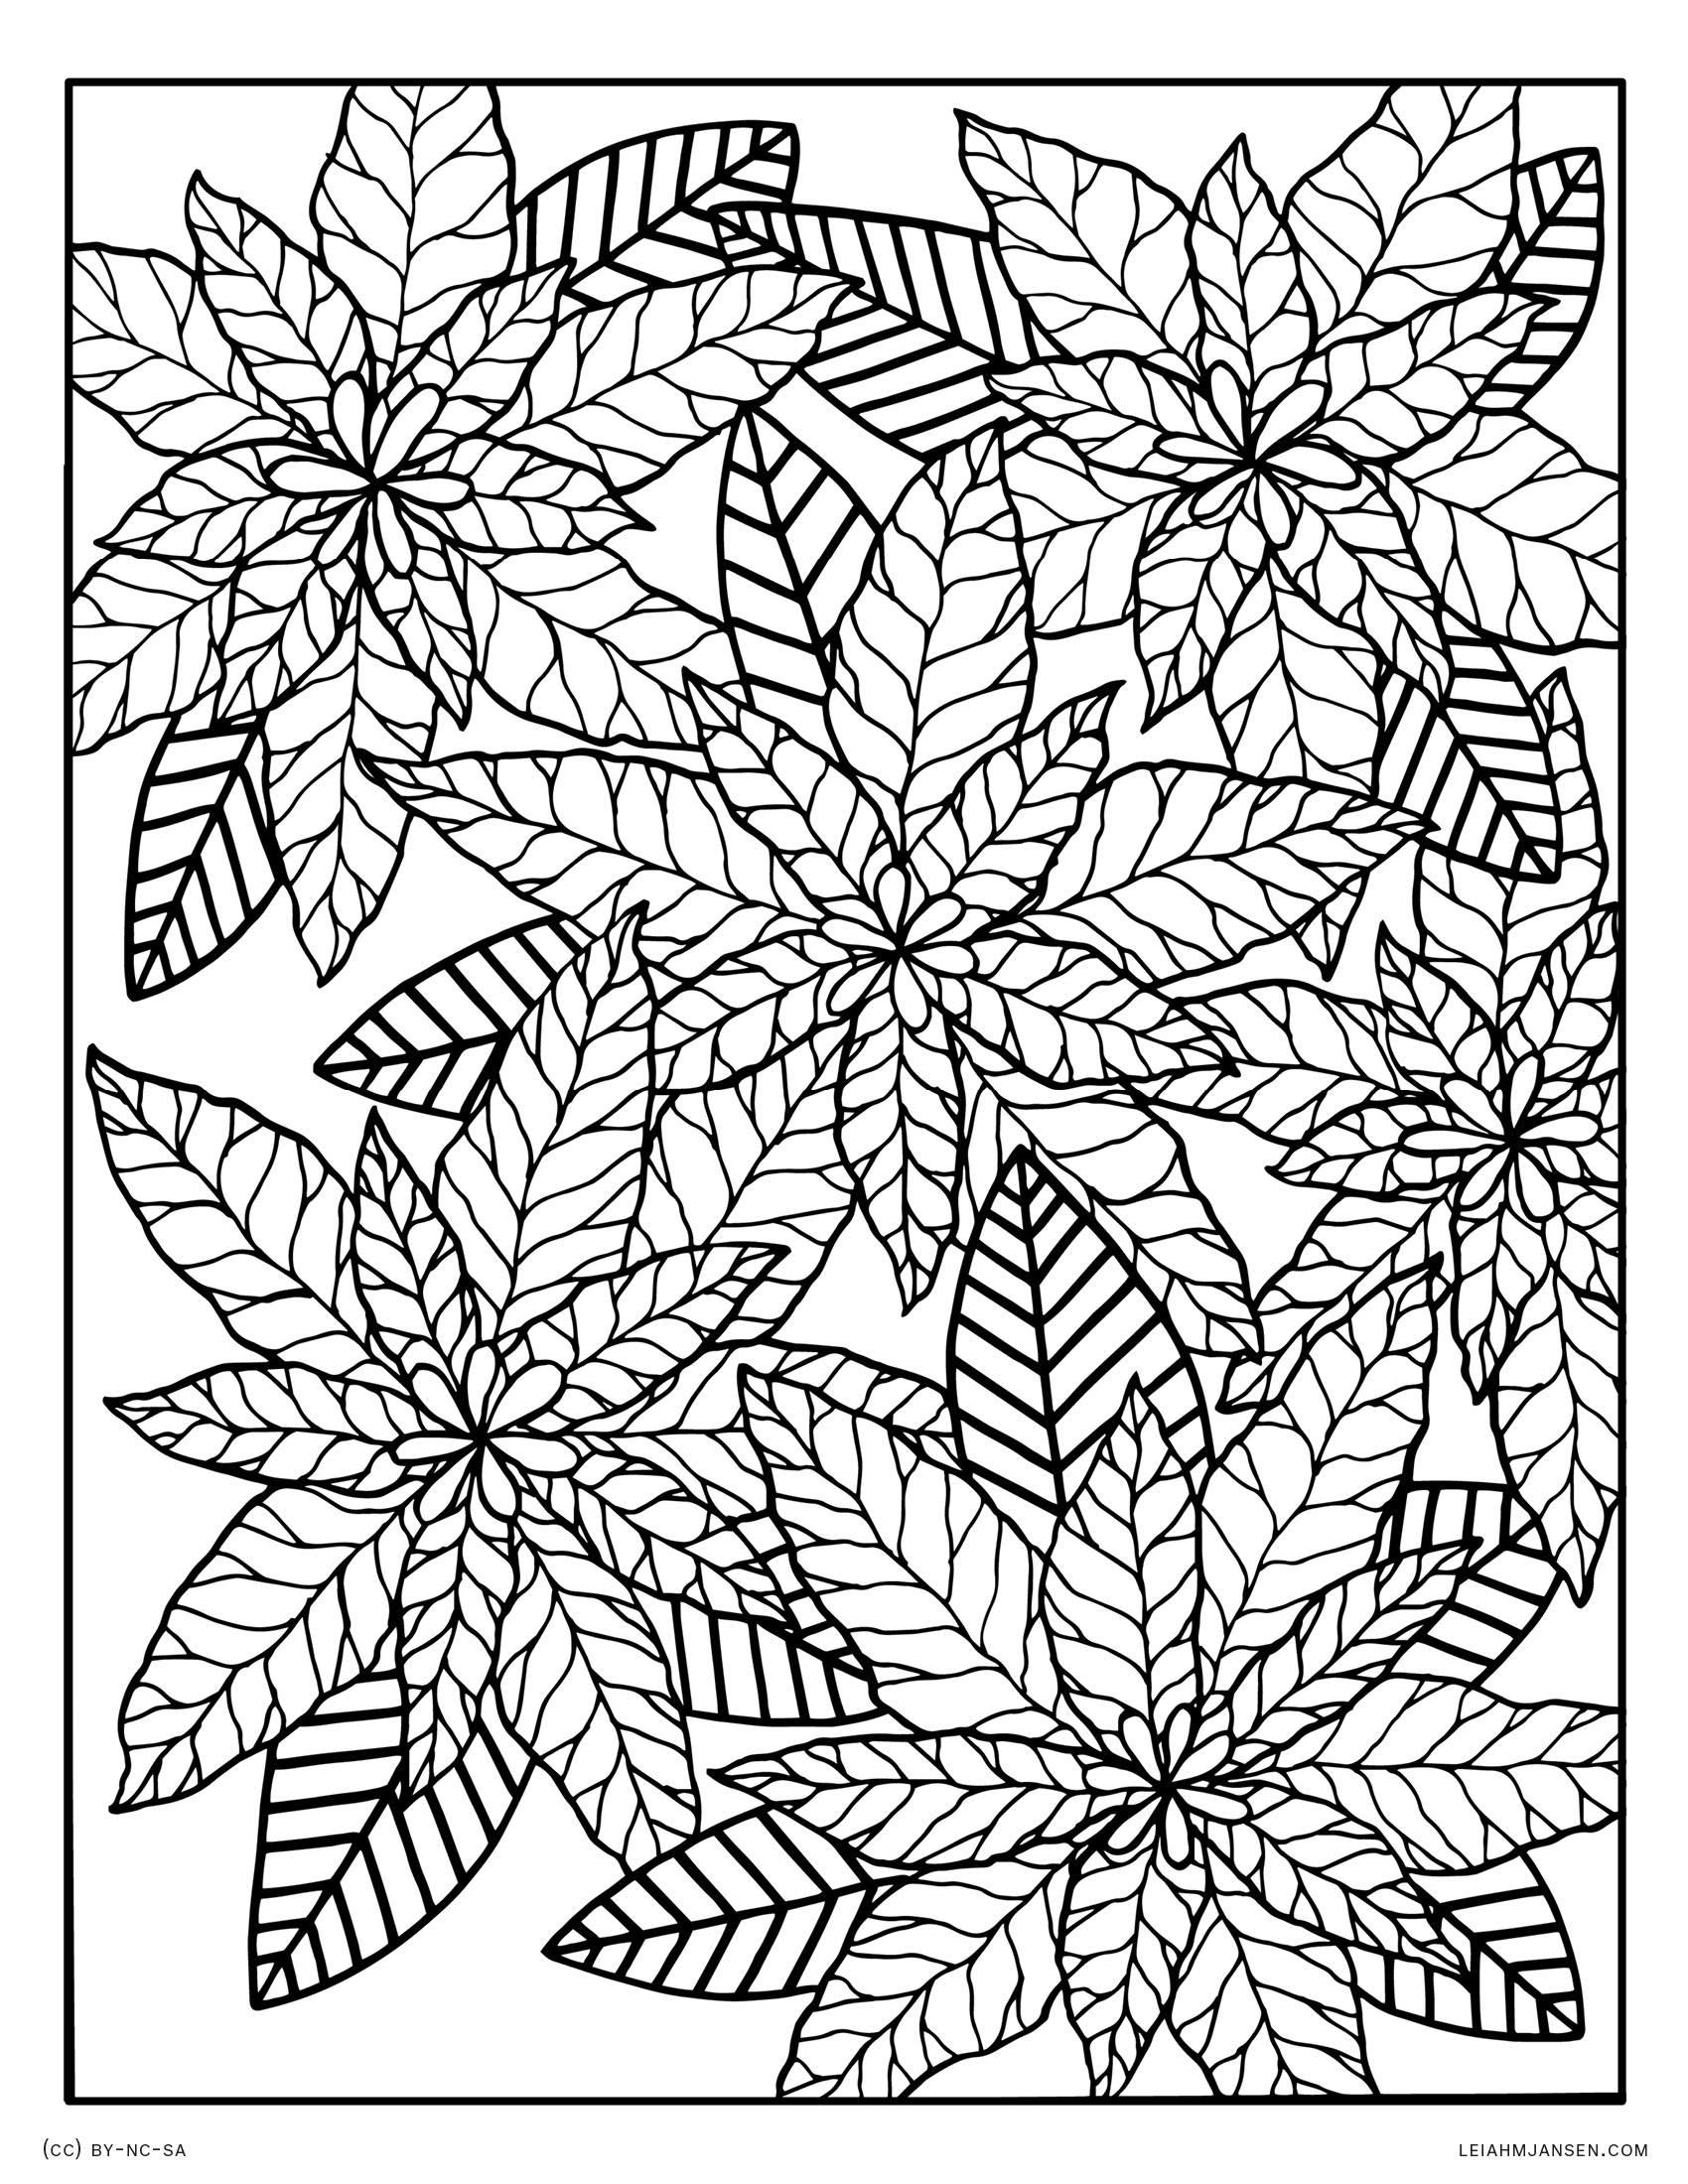 ho iday coloring pages - photo#50